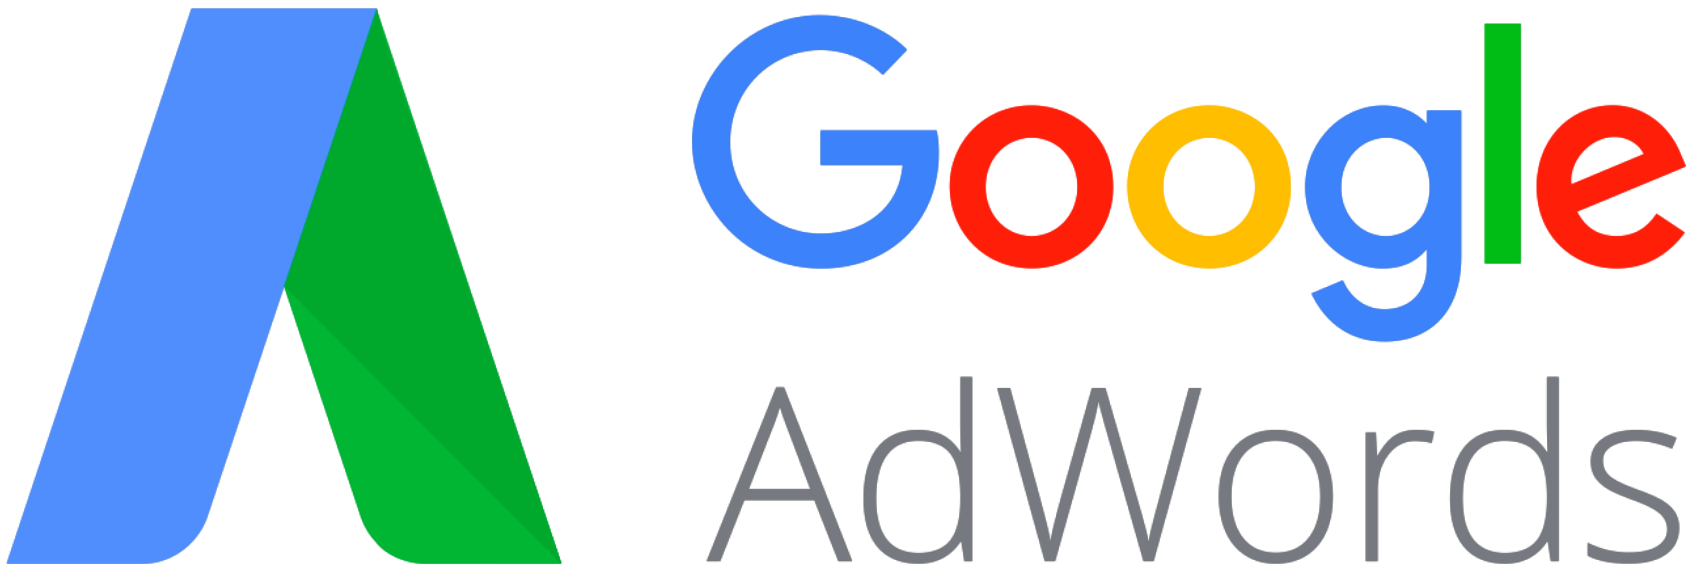 Google png. New adwords logo edigital